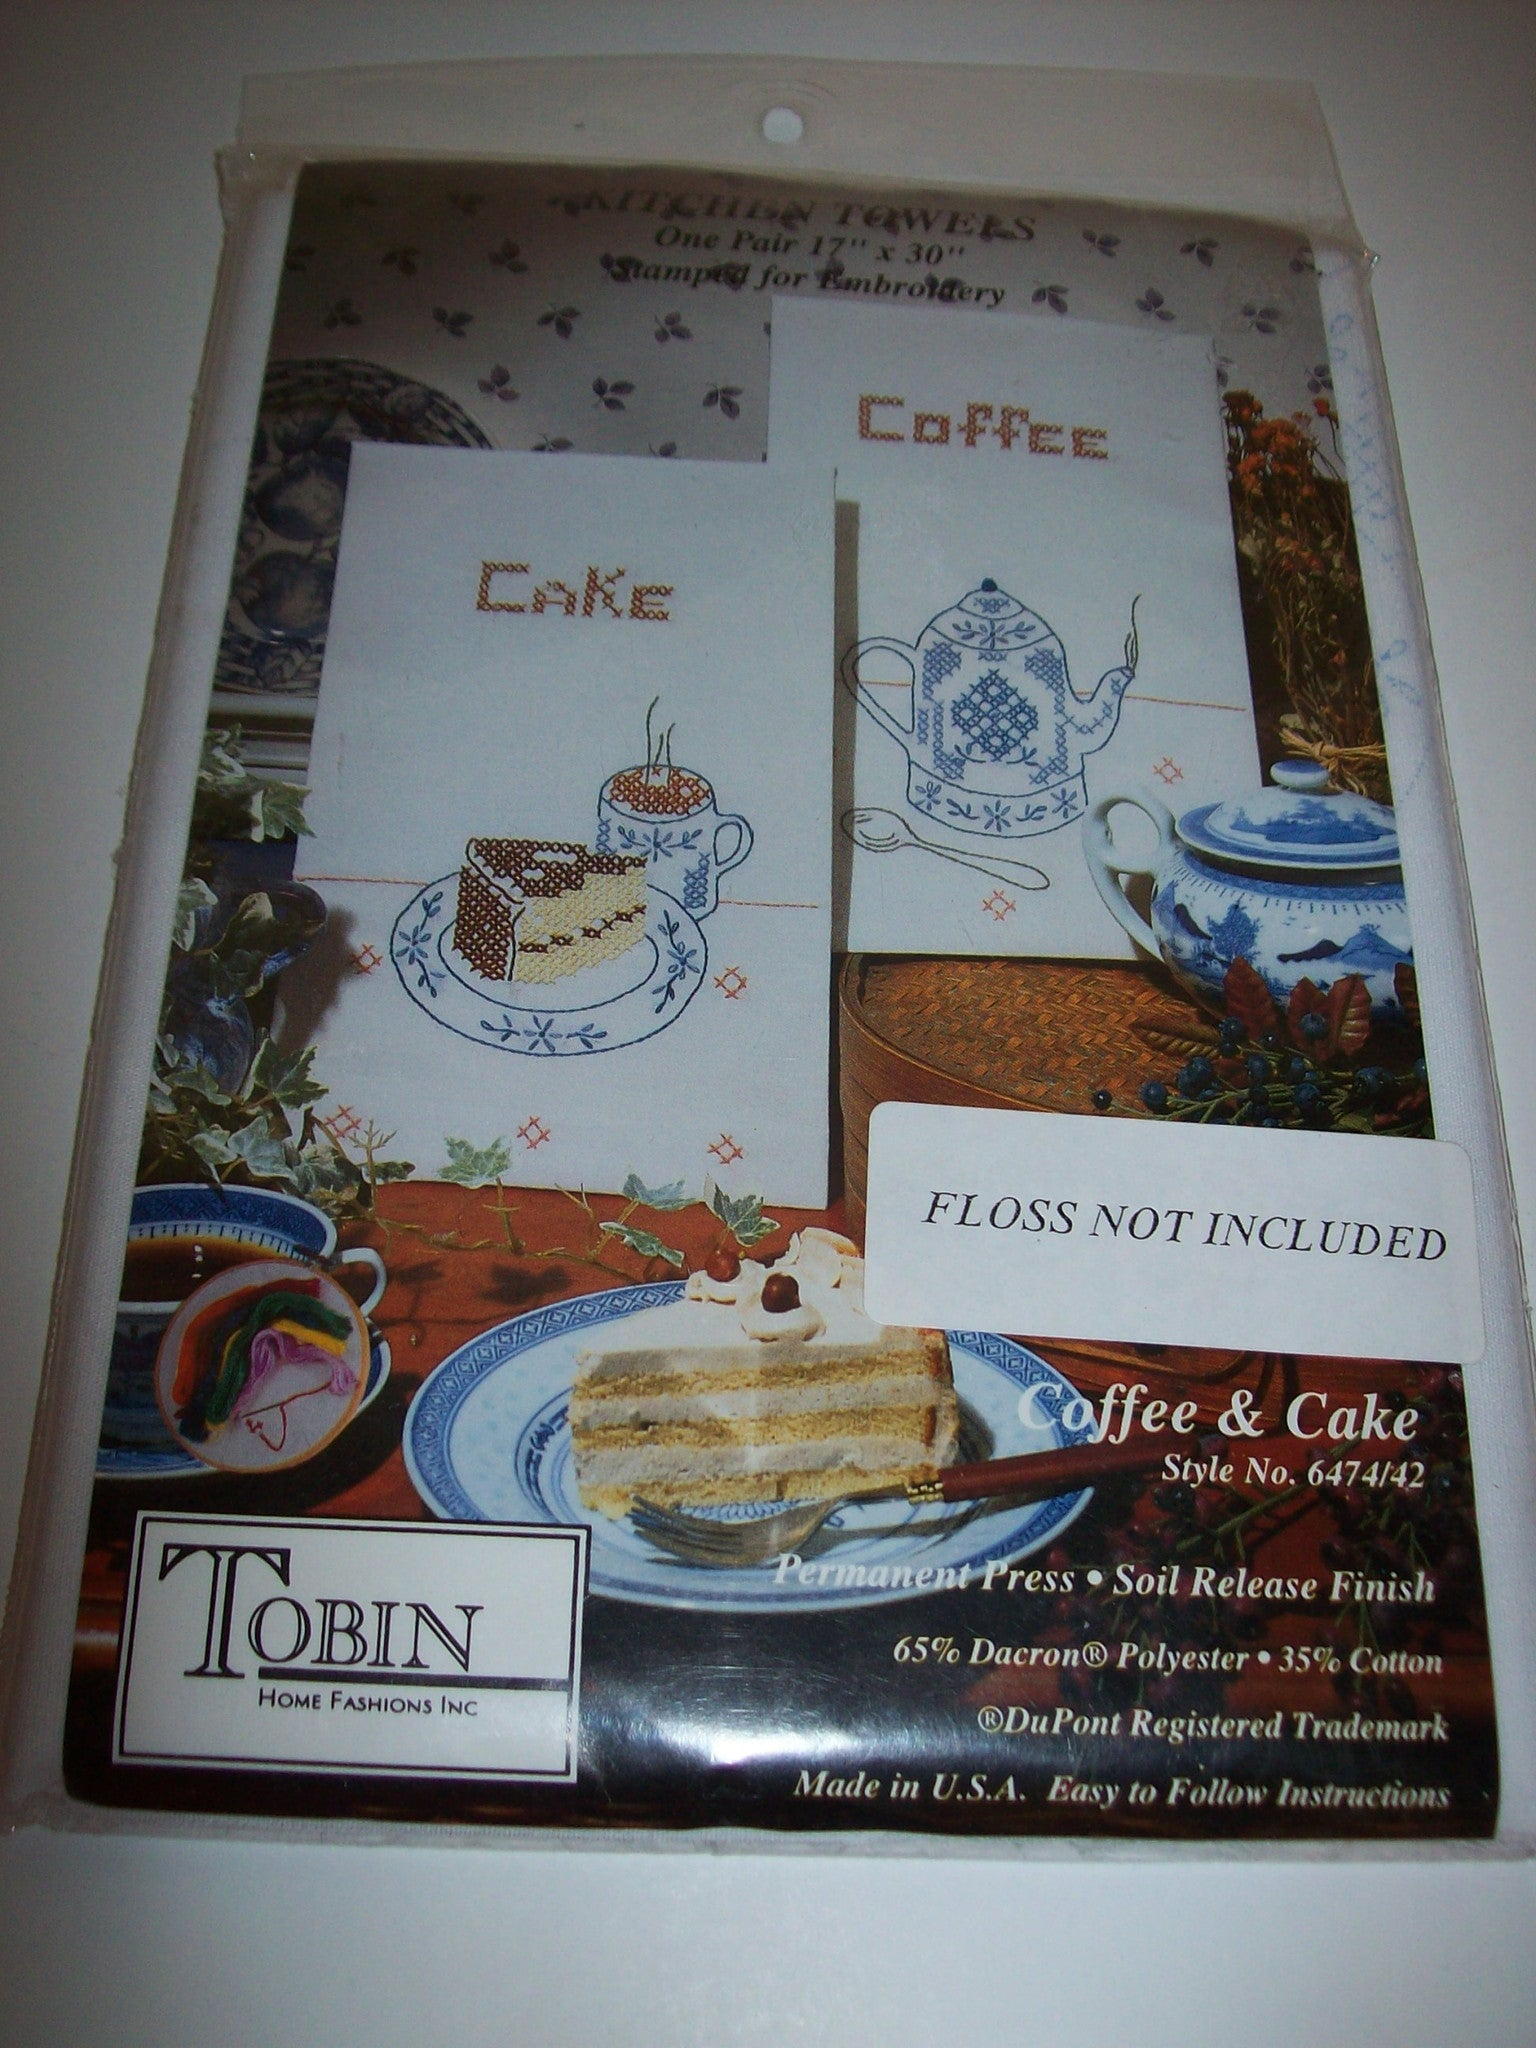 Tobin Home fashions Kitchen Towels Stamped Embroidery Coffee & Cake - We Got Character